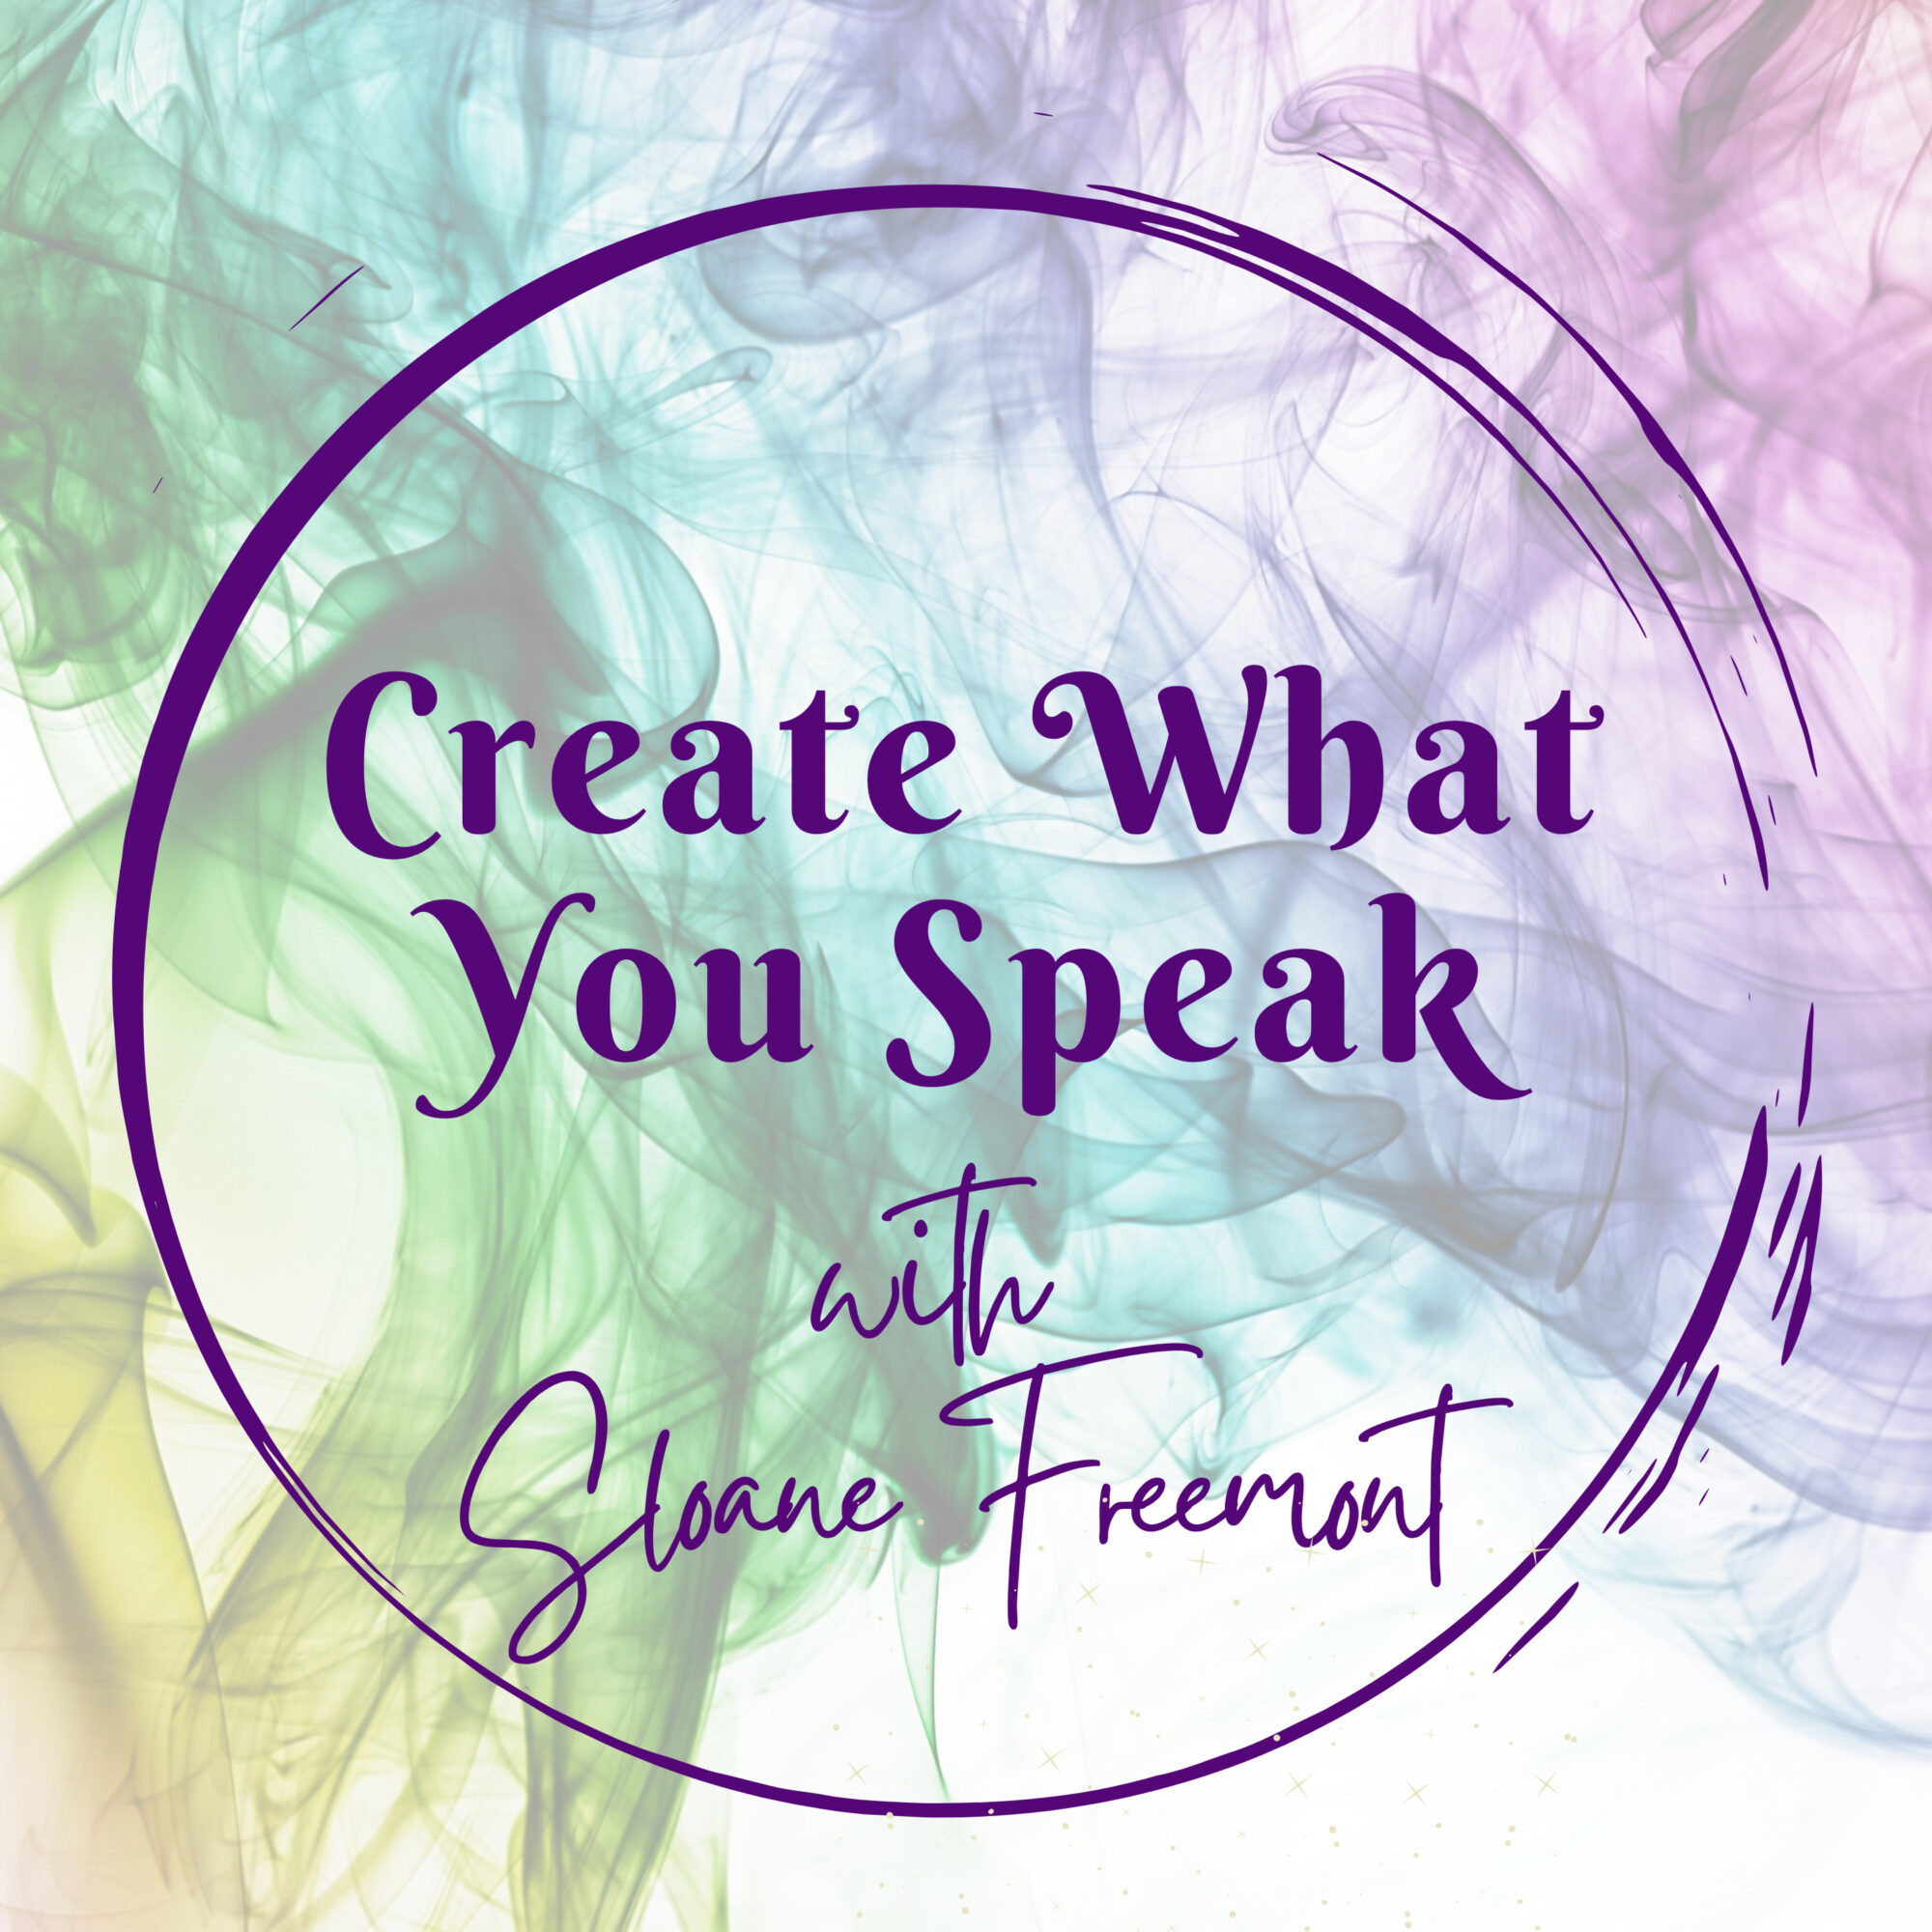 Create What You Speak with Sloane Freemont